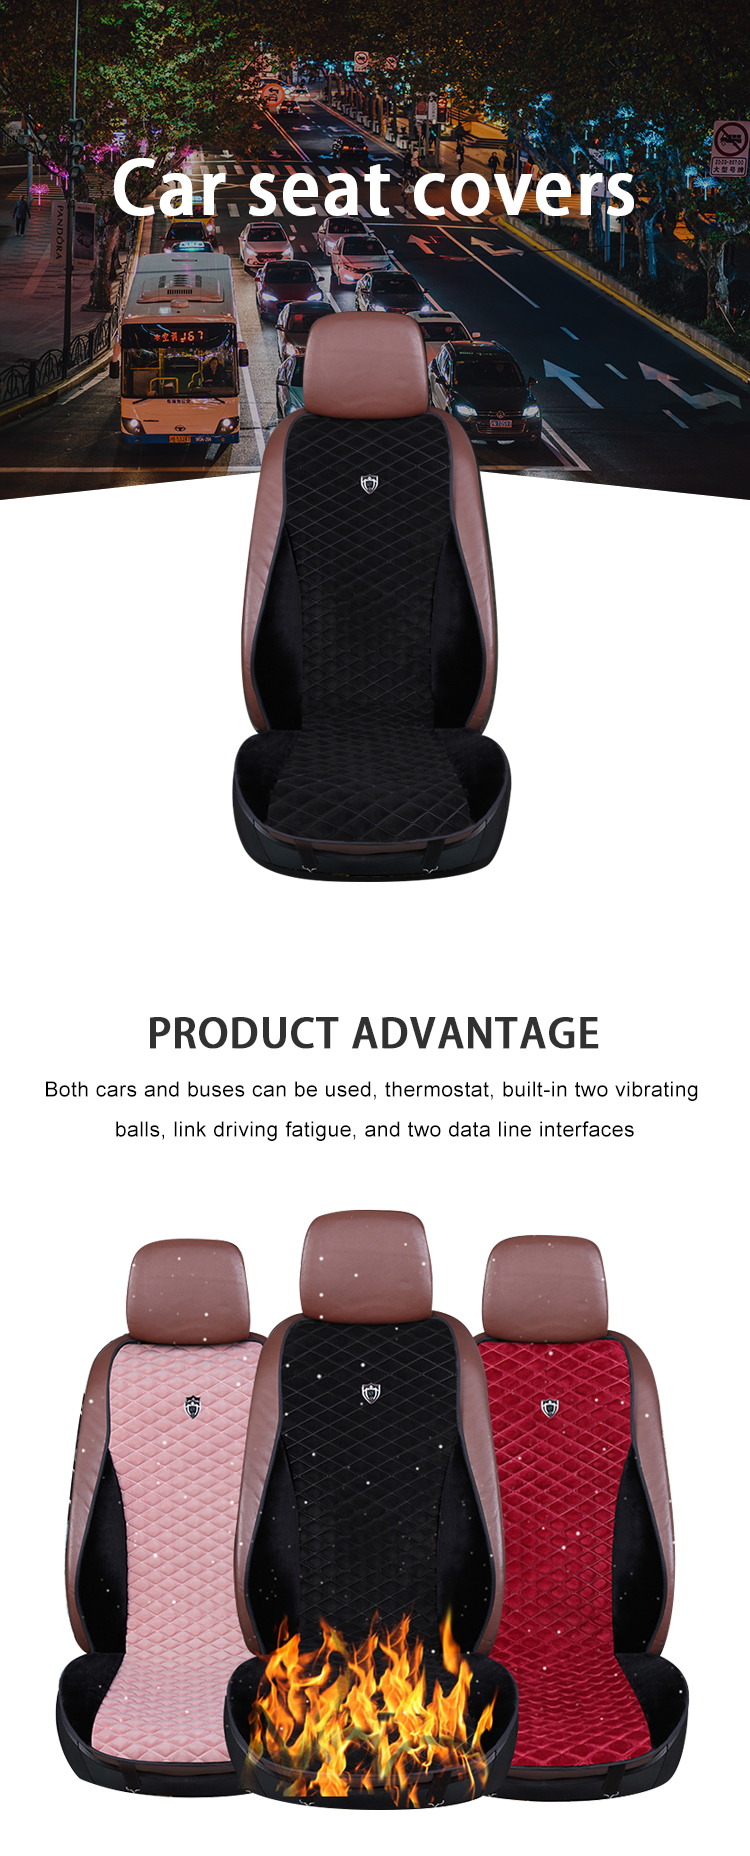 ZD-B-019  Car seat cover set black red velvet store tailor made heated covers best selling